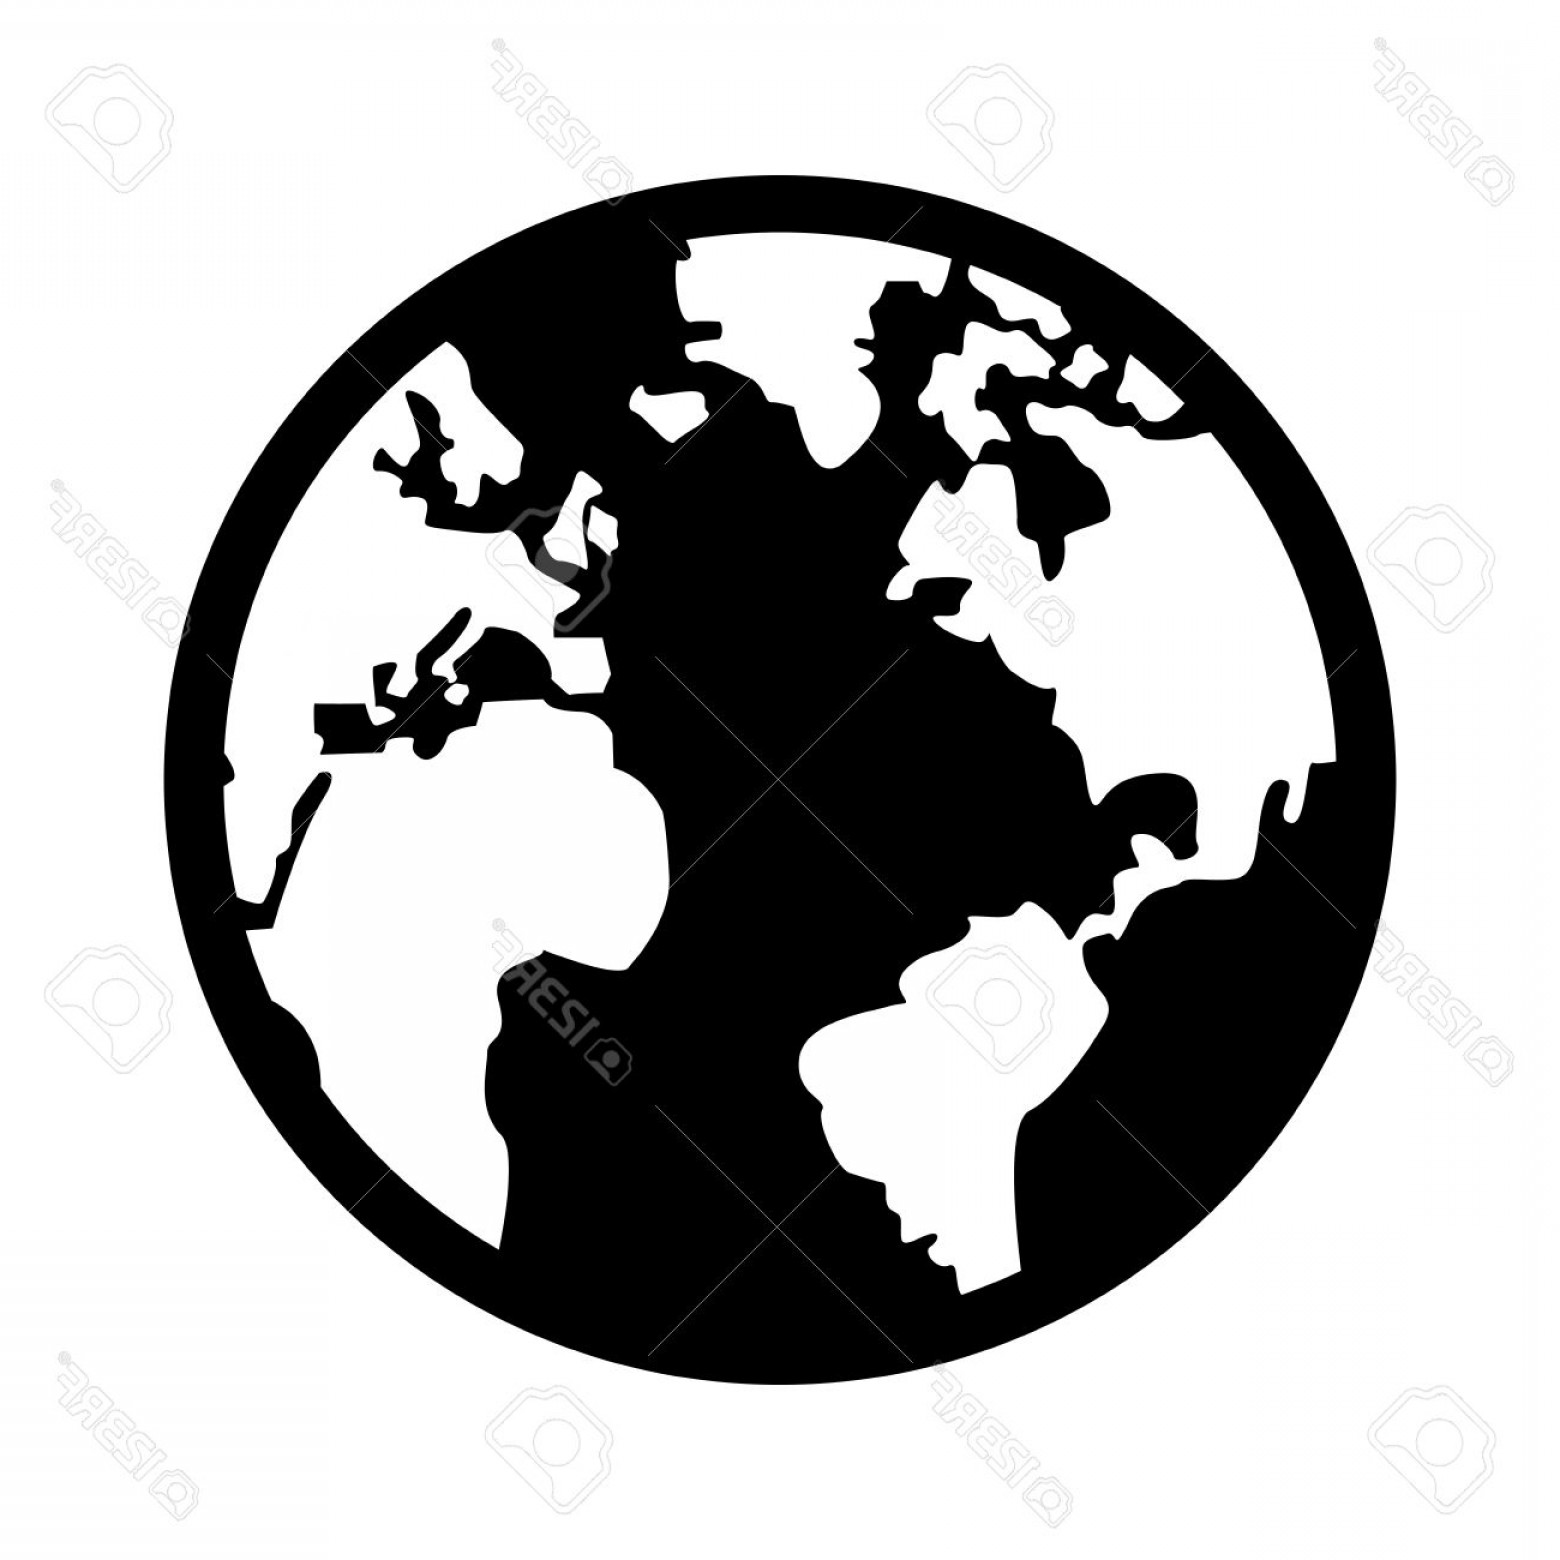 1560x1560 Photostock Vector Black And White Earth Globe With Distinction